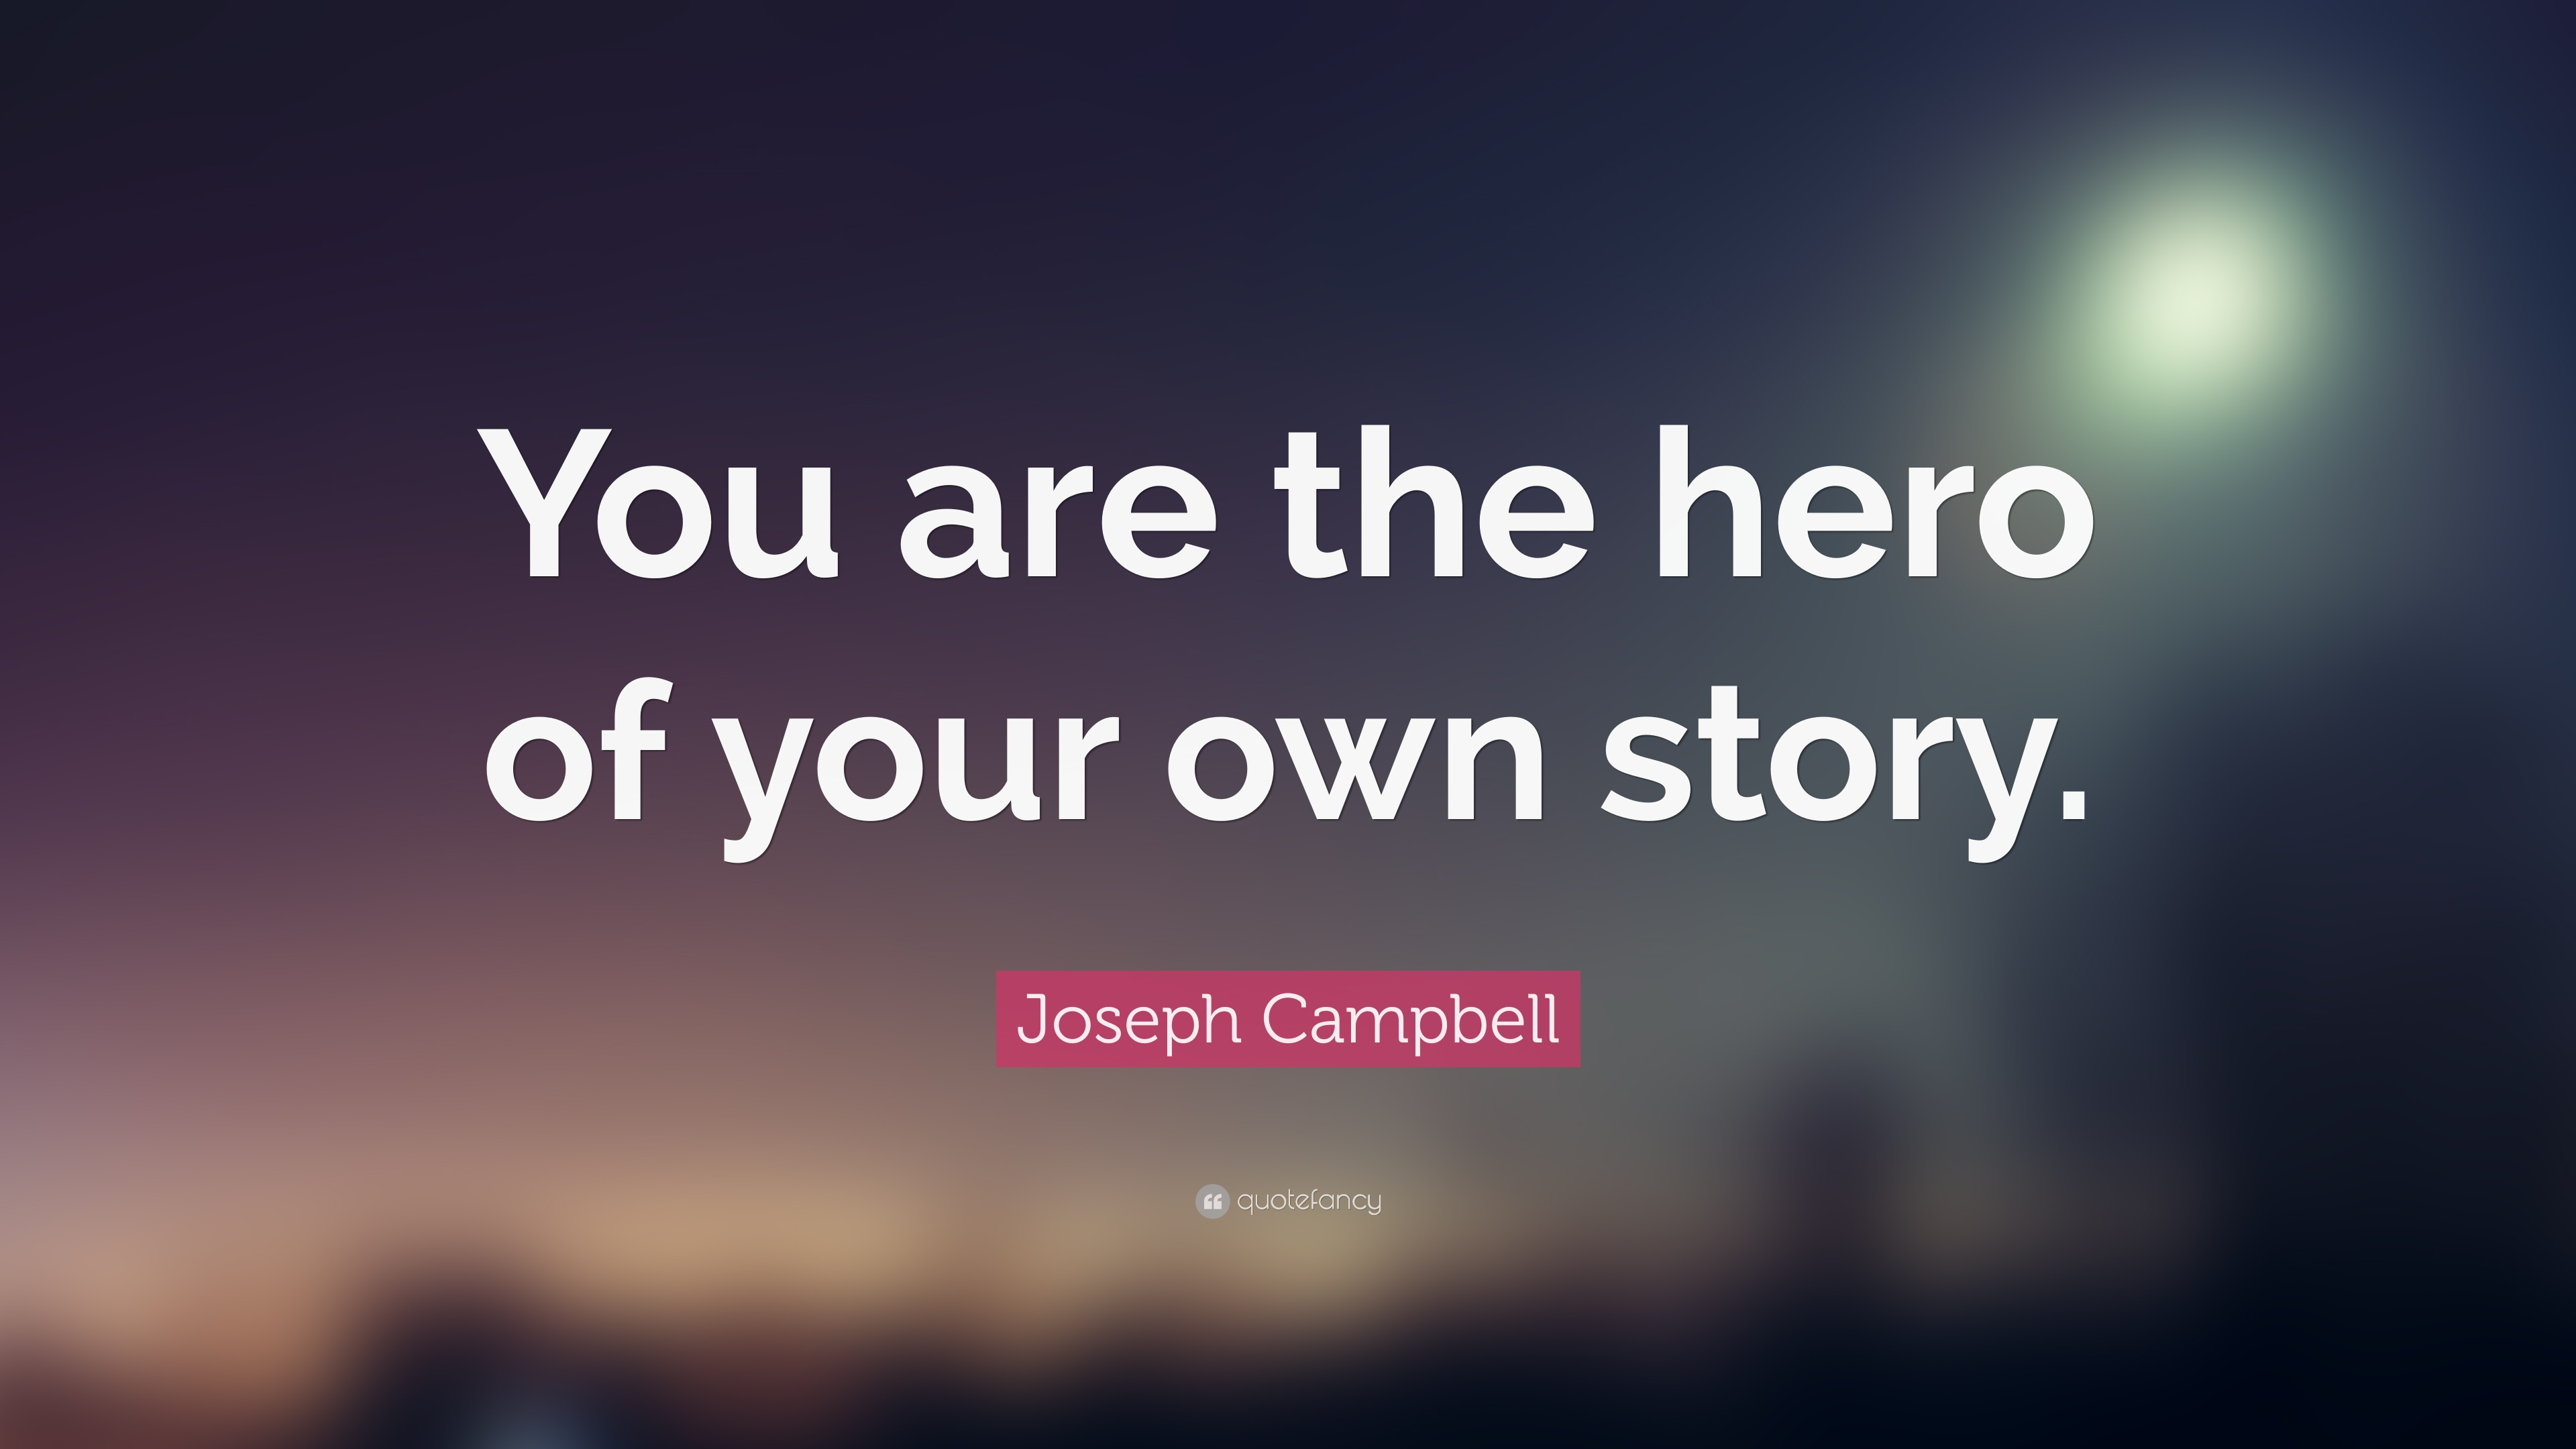 joseph campbell quote you are the hero of your own story